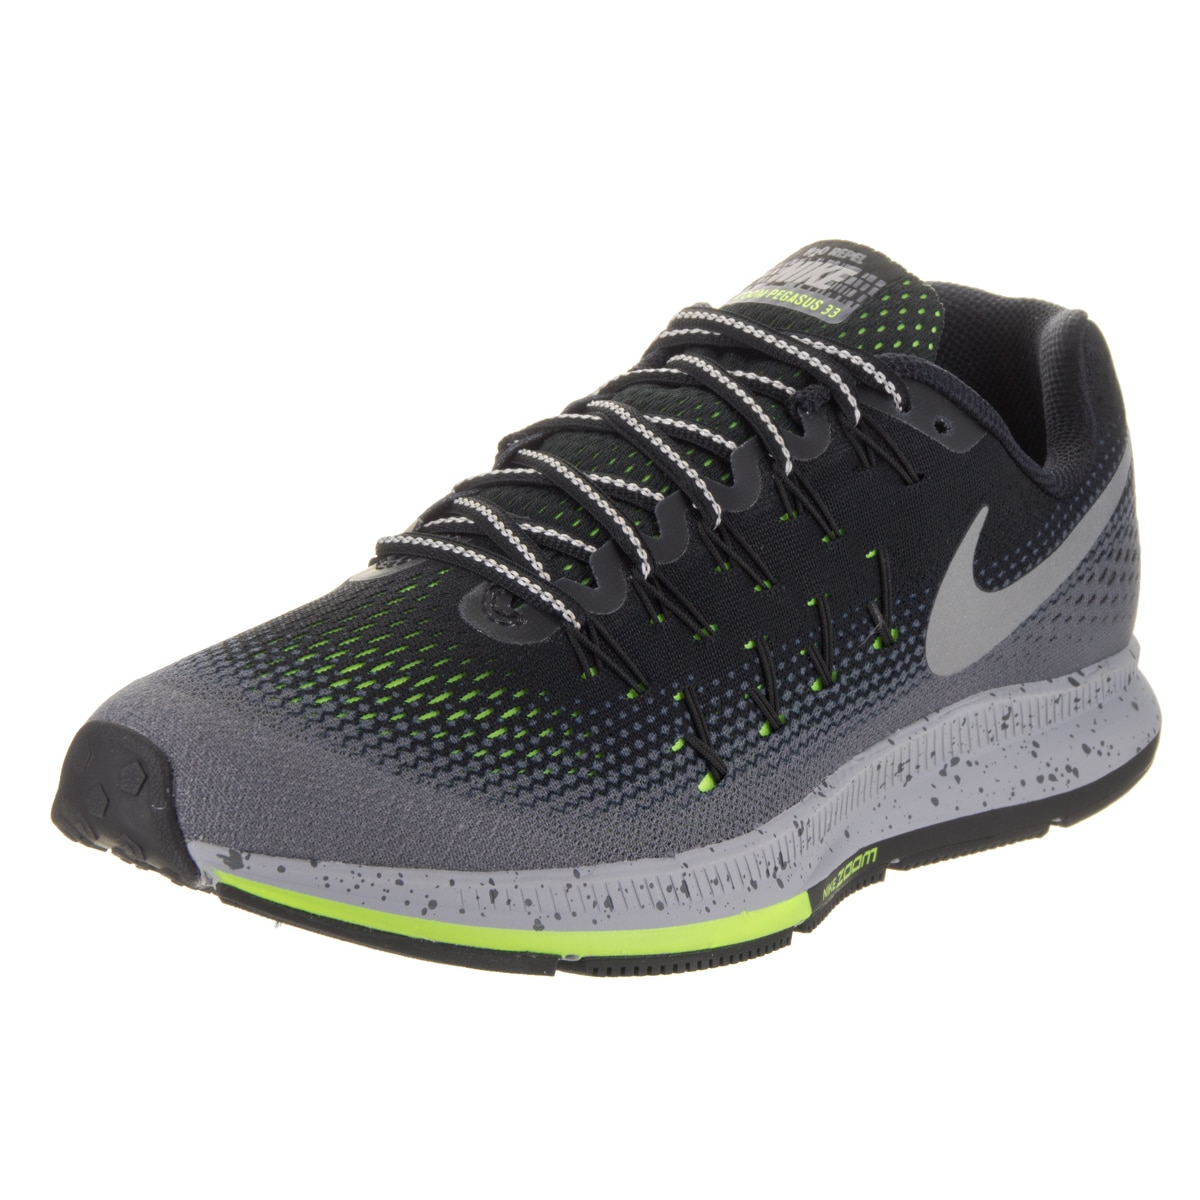 reputable site 5fa18 9ee9b Nike Men's Air Zoom Pegasus 33 Shield Black Synthetic Leather Running Shoes